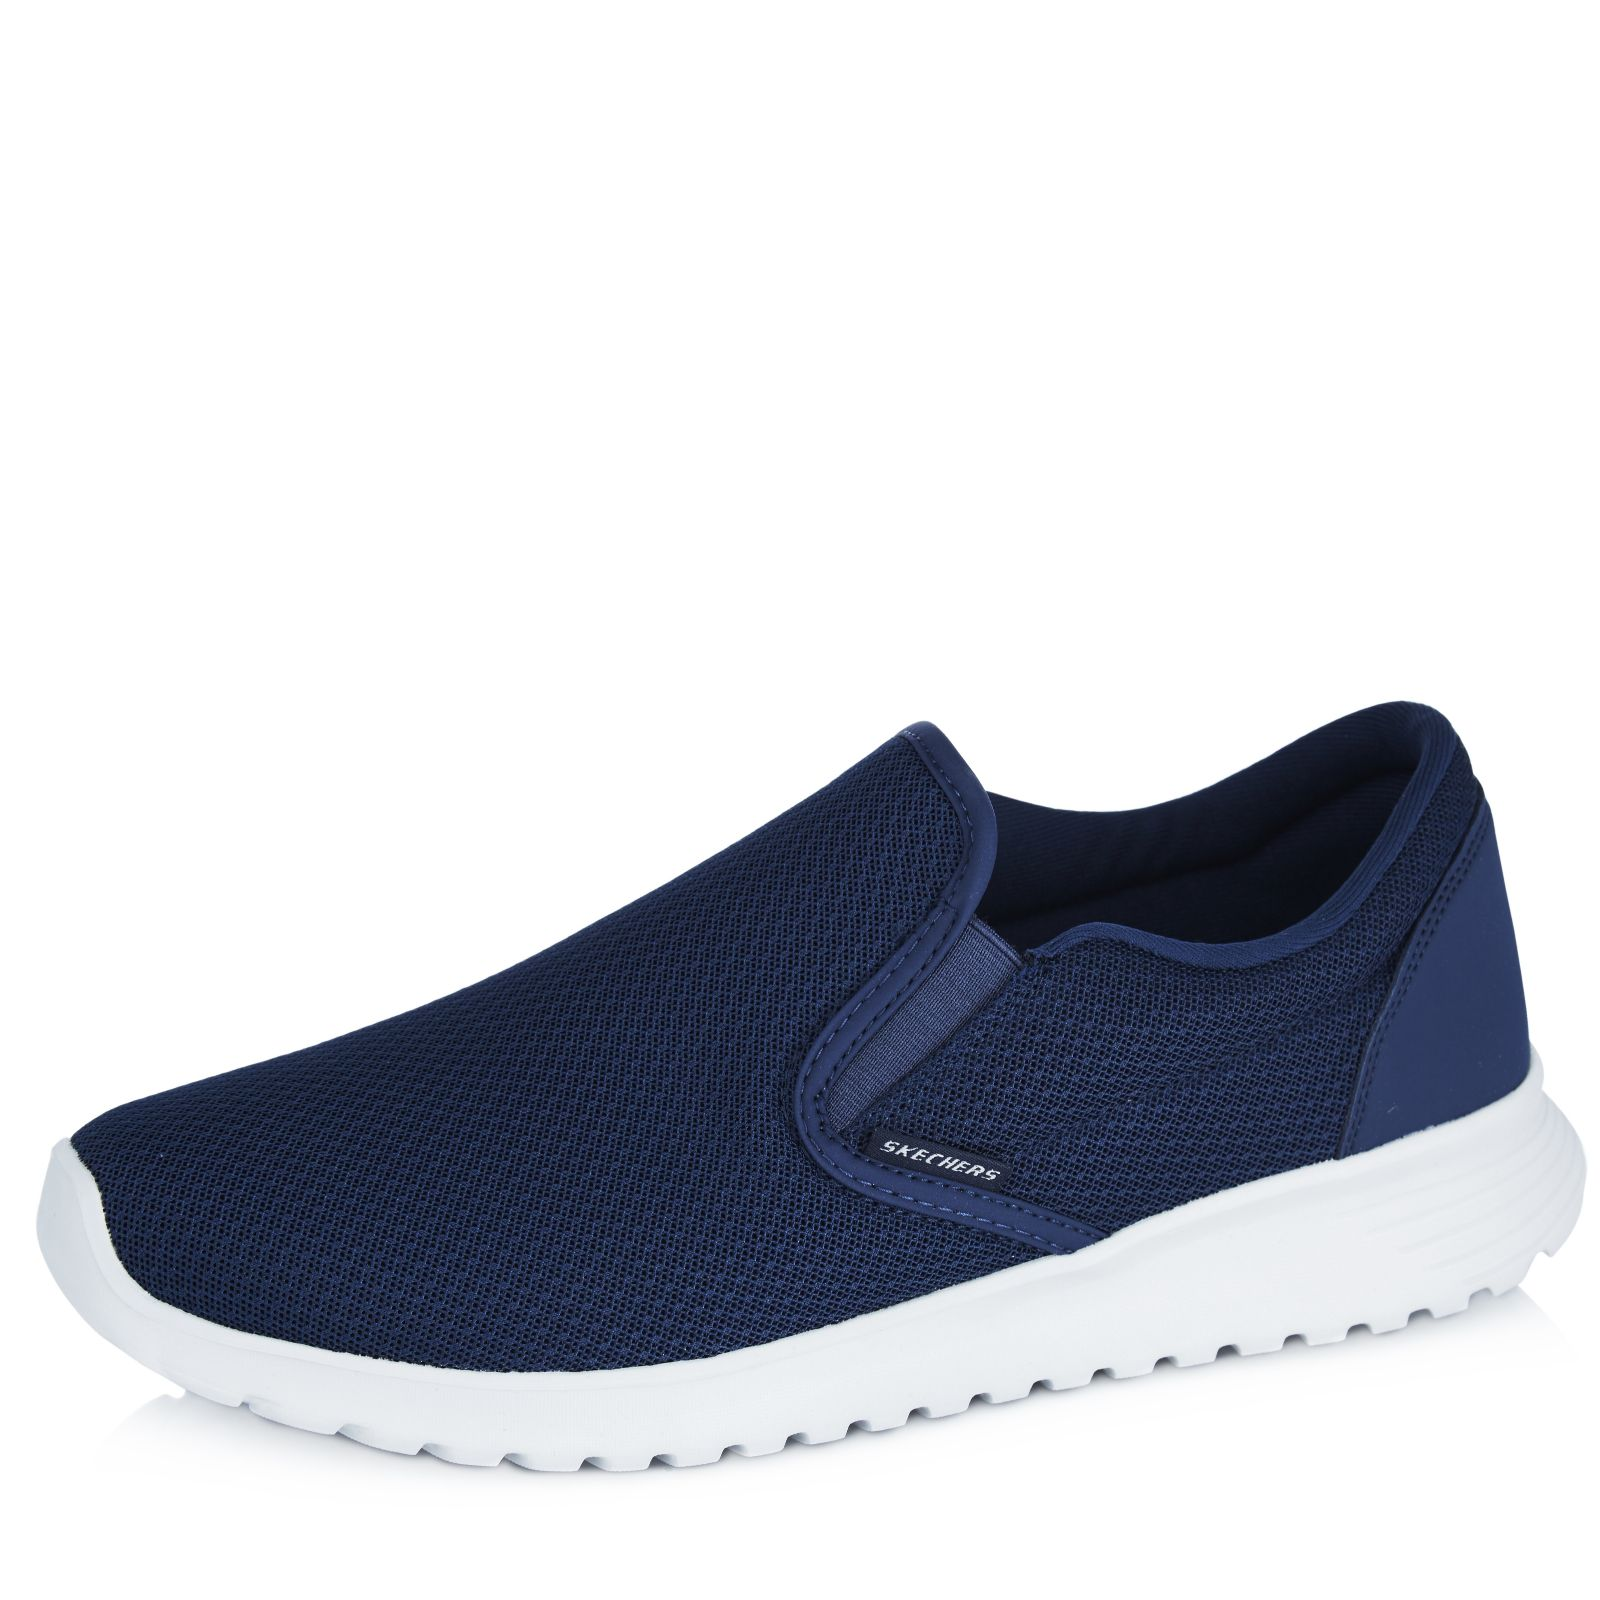 Skechers Zimsey Mesh Men's Slip On Shoe with Air Cooled Memory Foam - QVC UK